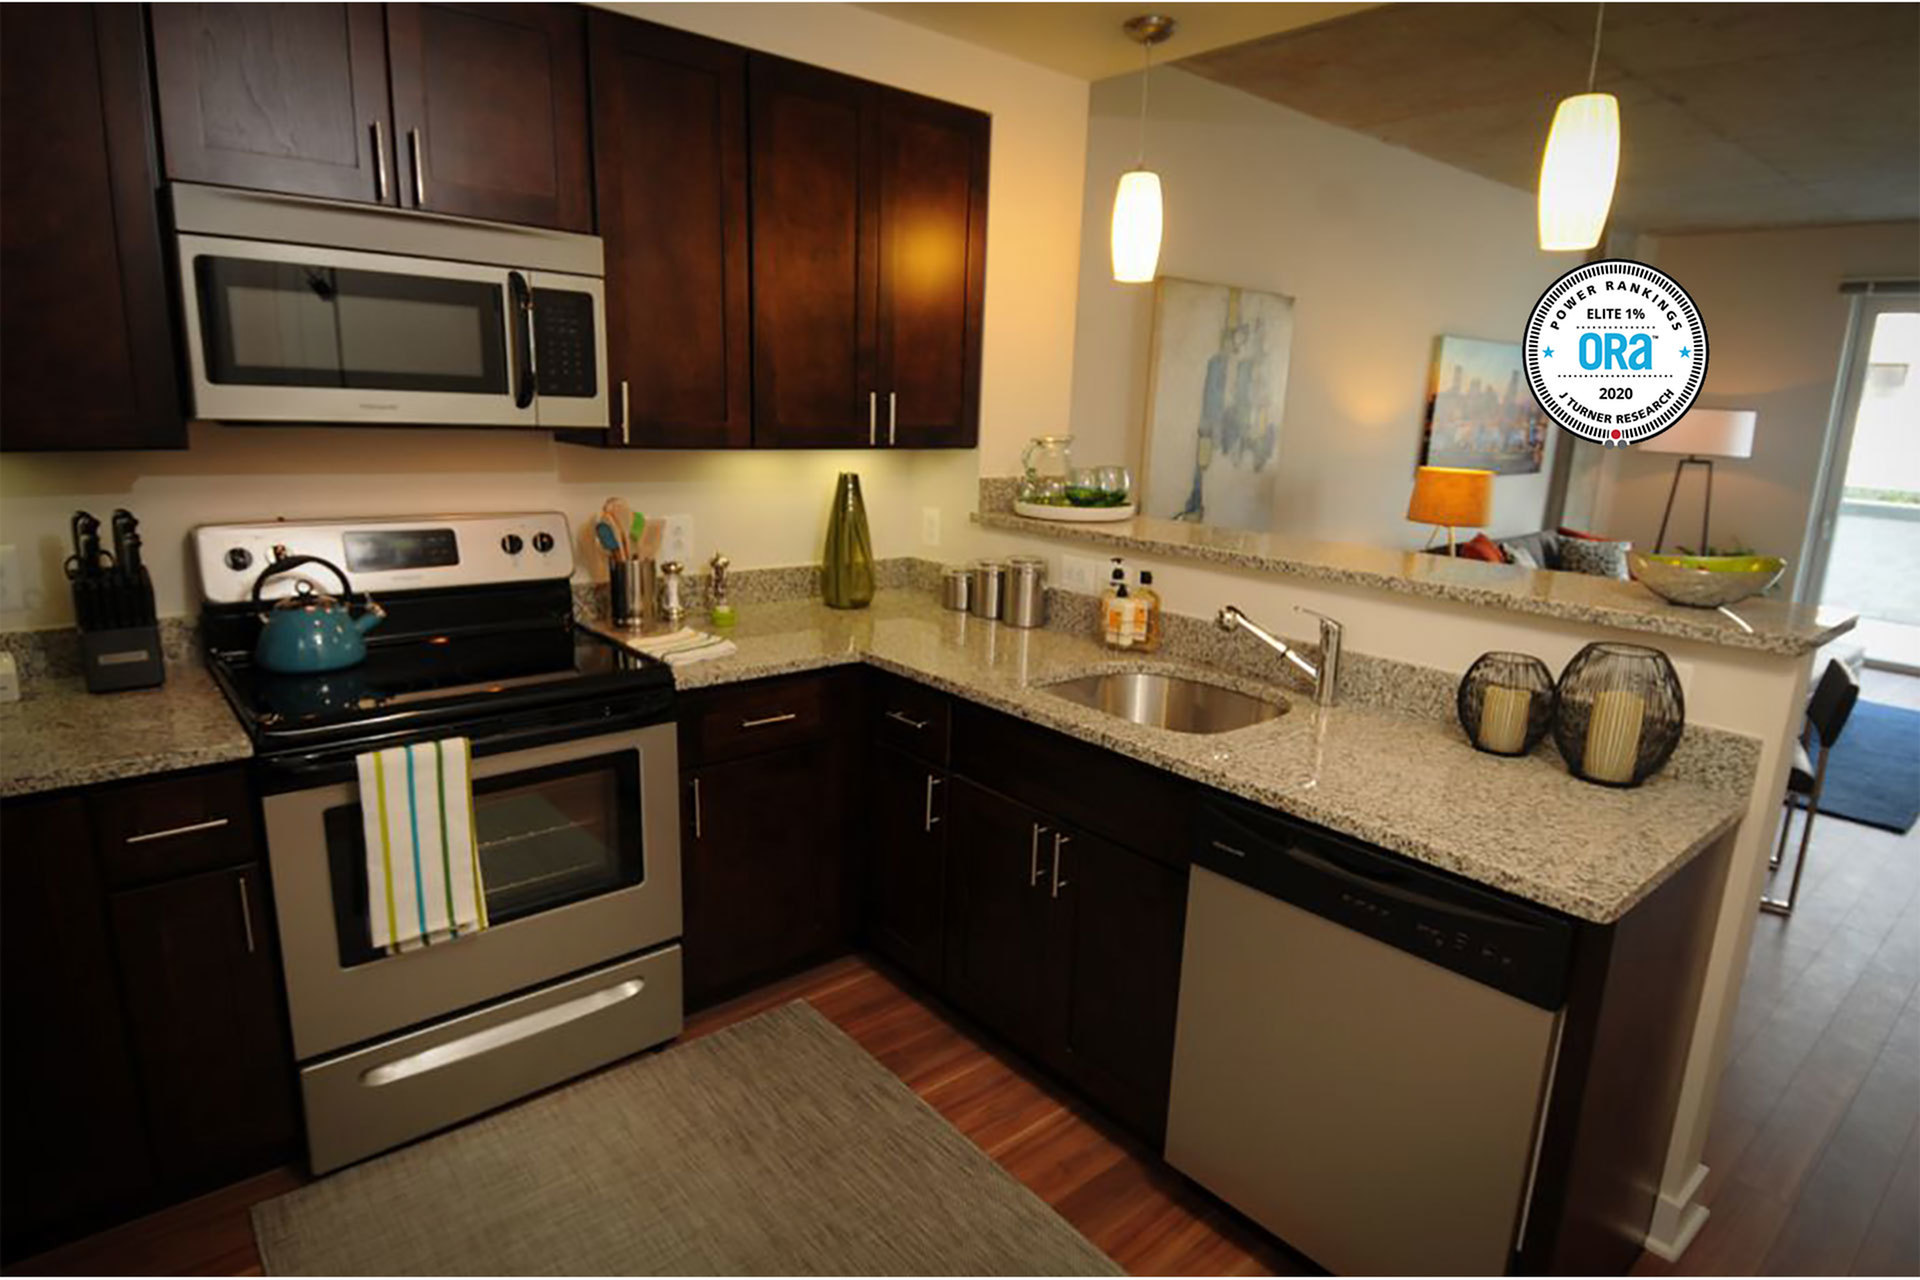 Kitchen with stainless steal appliances, granite counters, and a breakfast bar over looking the living space. ORA 2020 Power Rankings J Turner Research seal superimposed in the right corner of the photo.